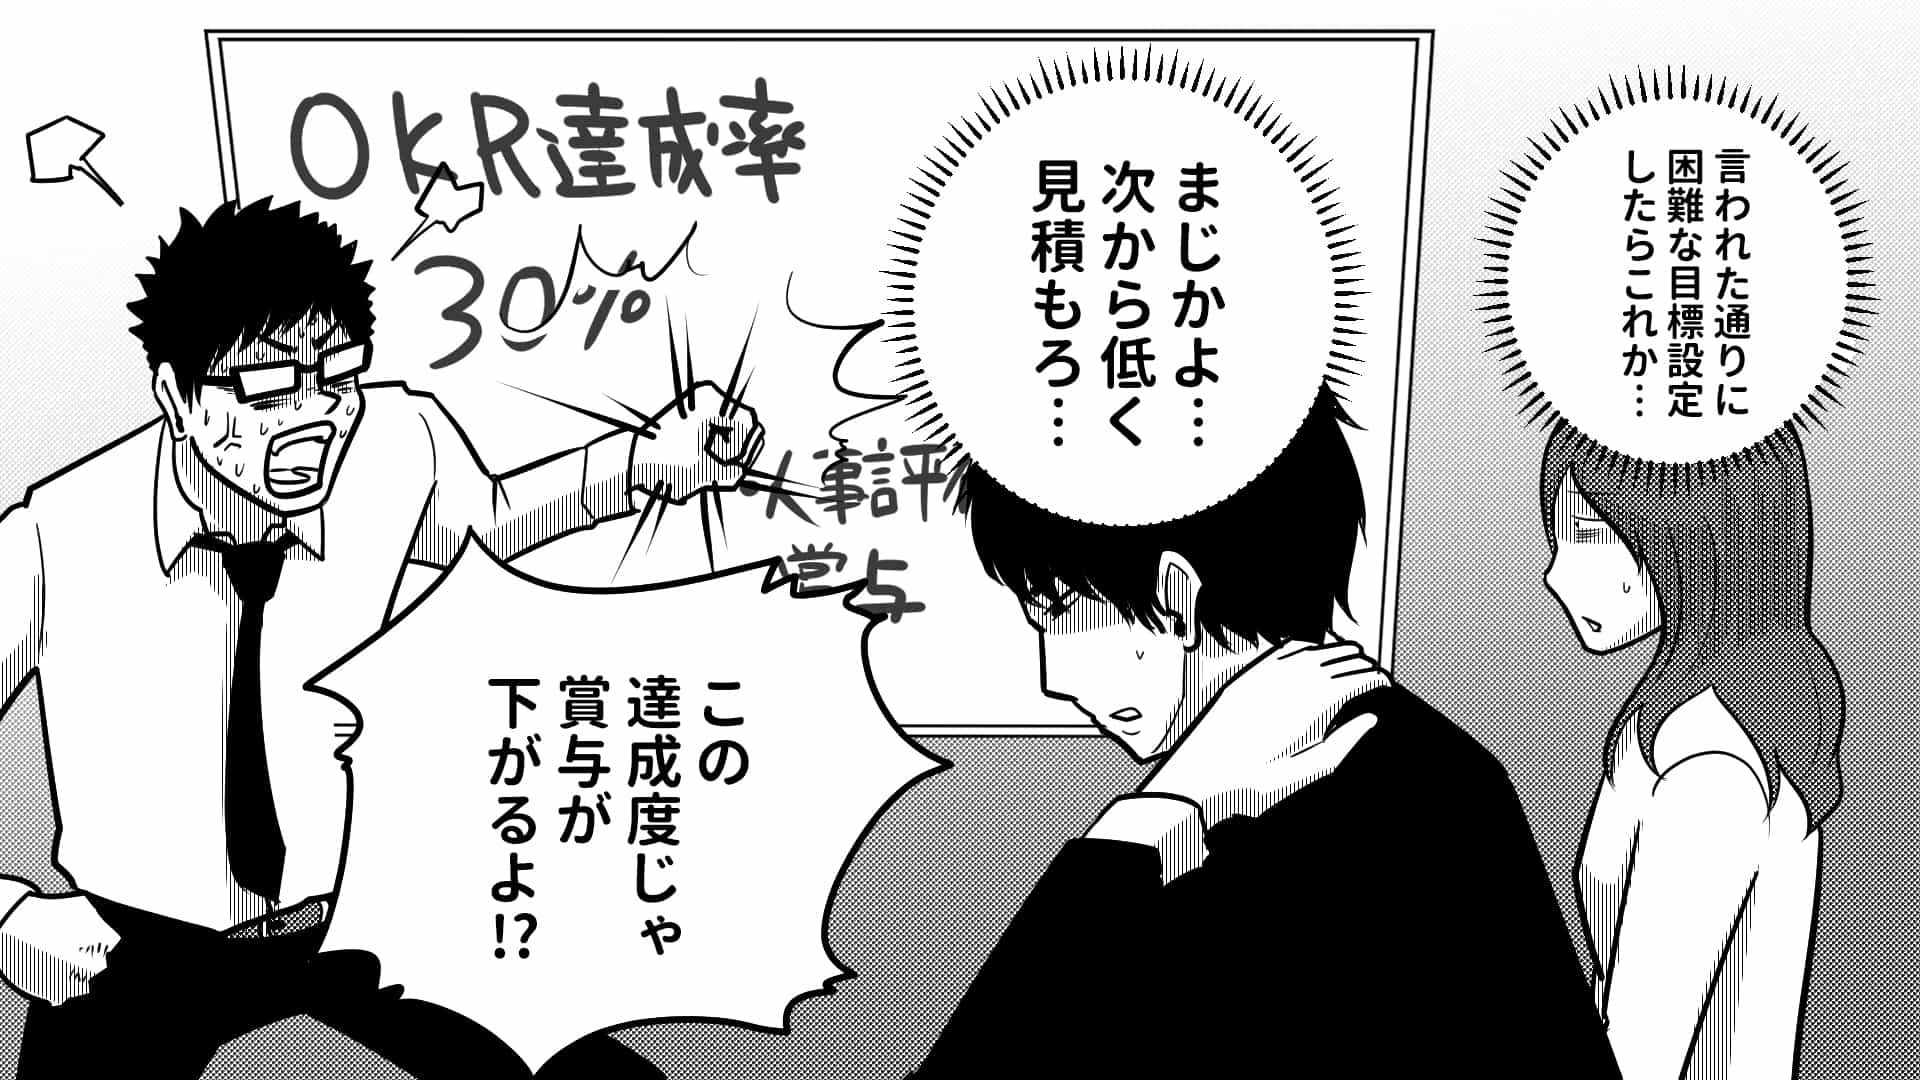 OKR 評価・給与に影響